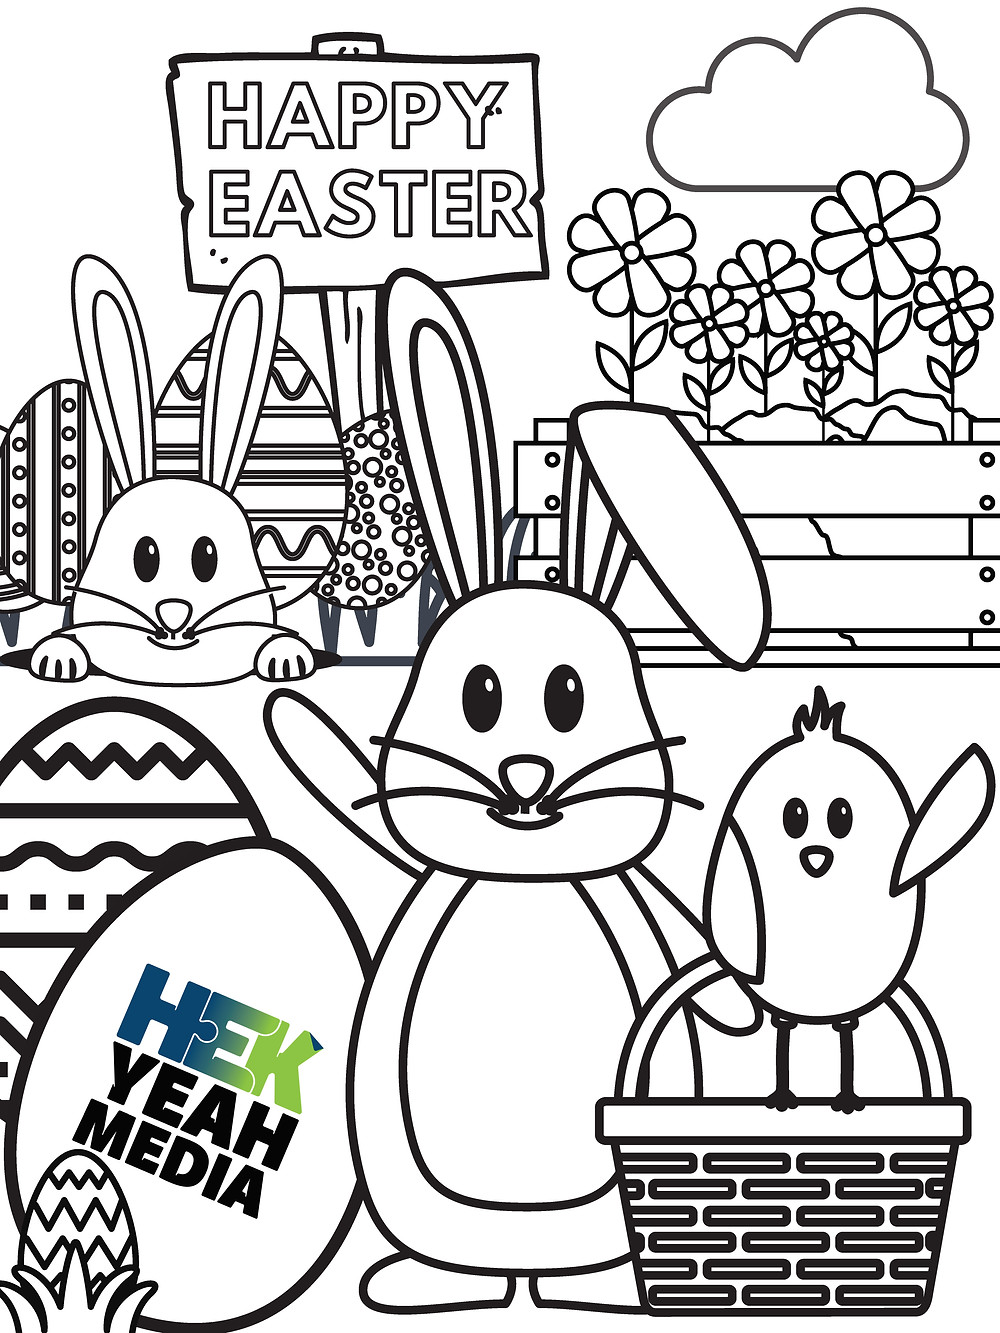 Host a household colouring contest this Easter long weekend by downloading this design and tag us in your social media posts with your finished creation.